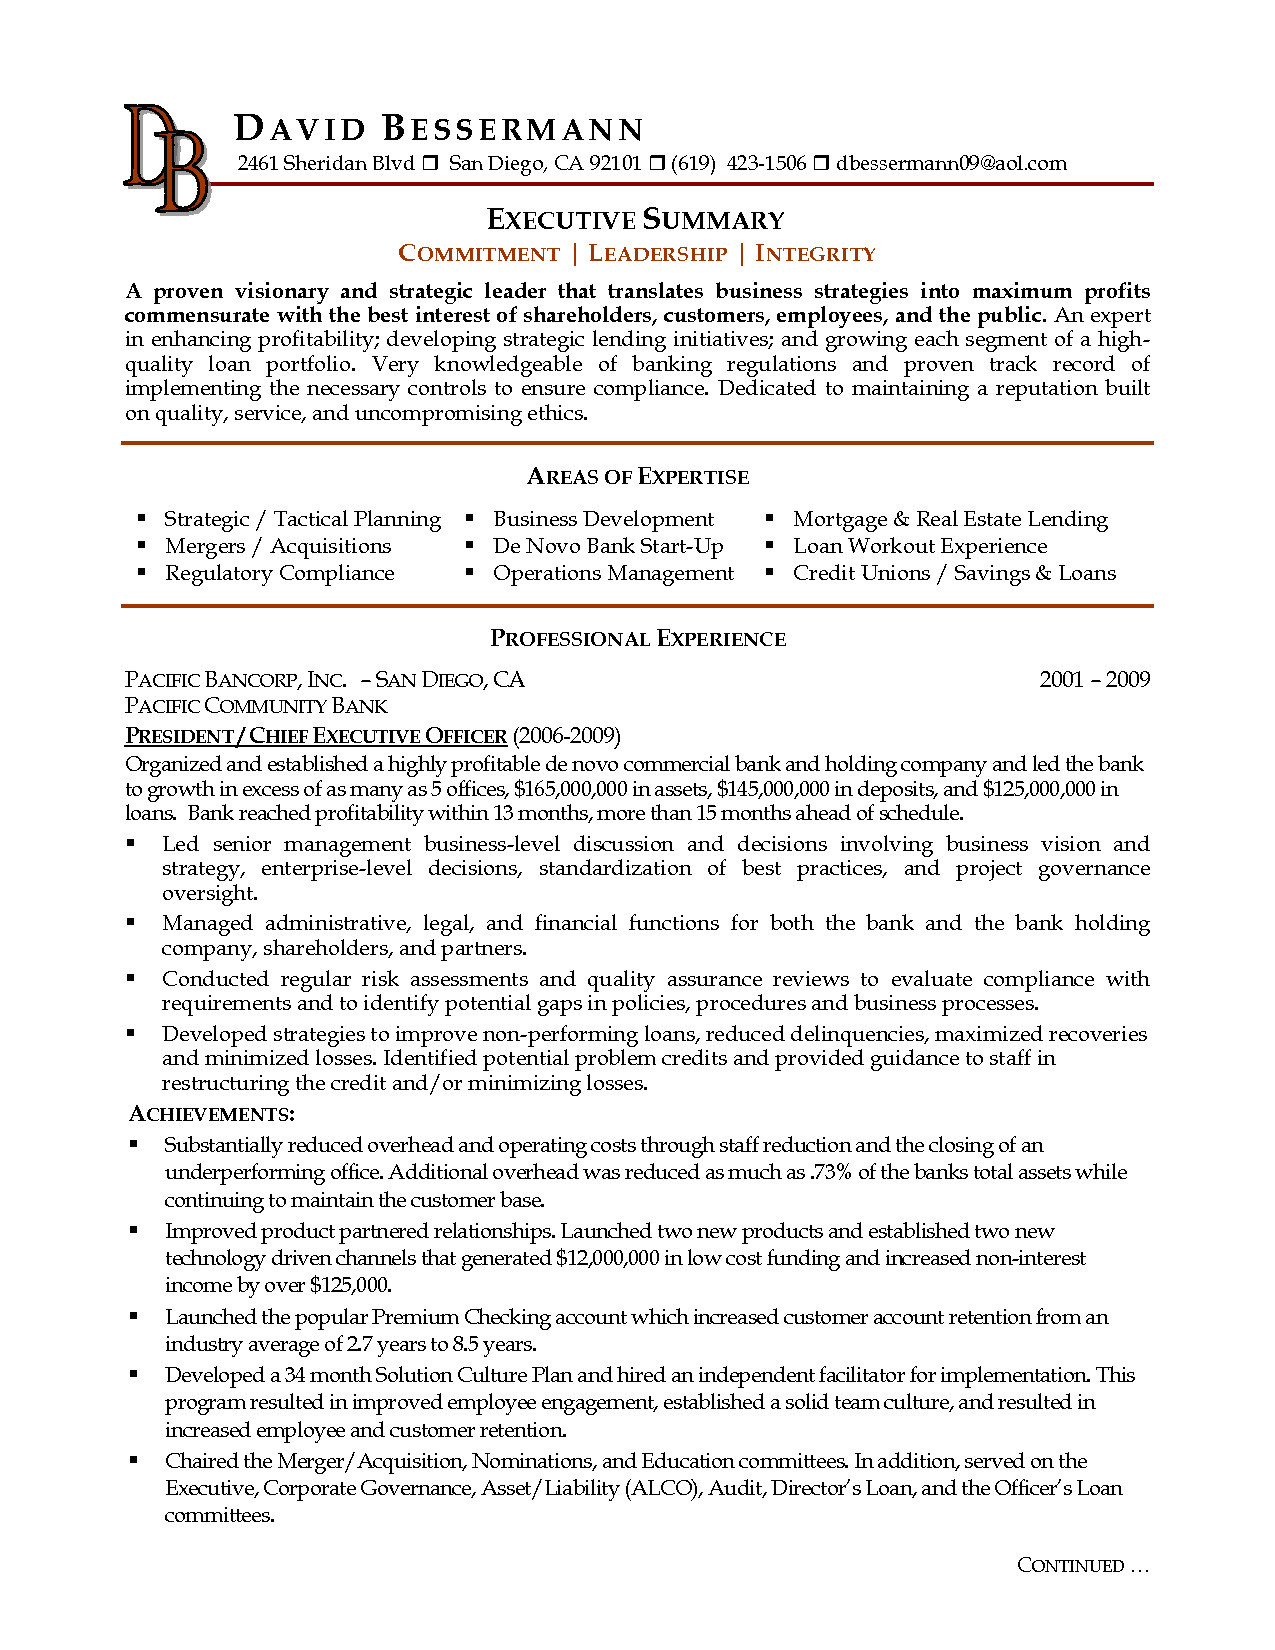 14 mergers and acquisitions resume template ideas resume